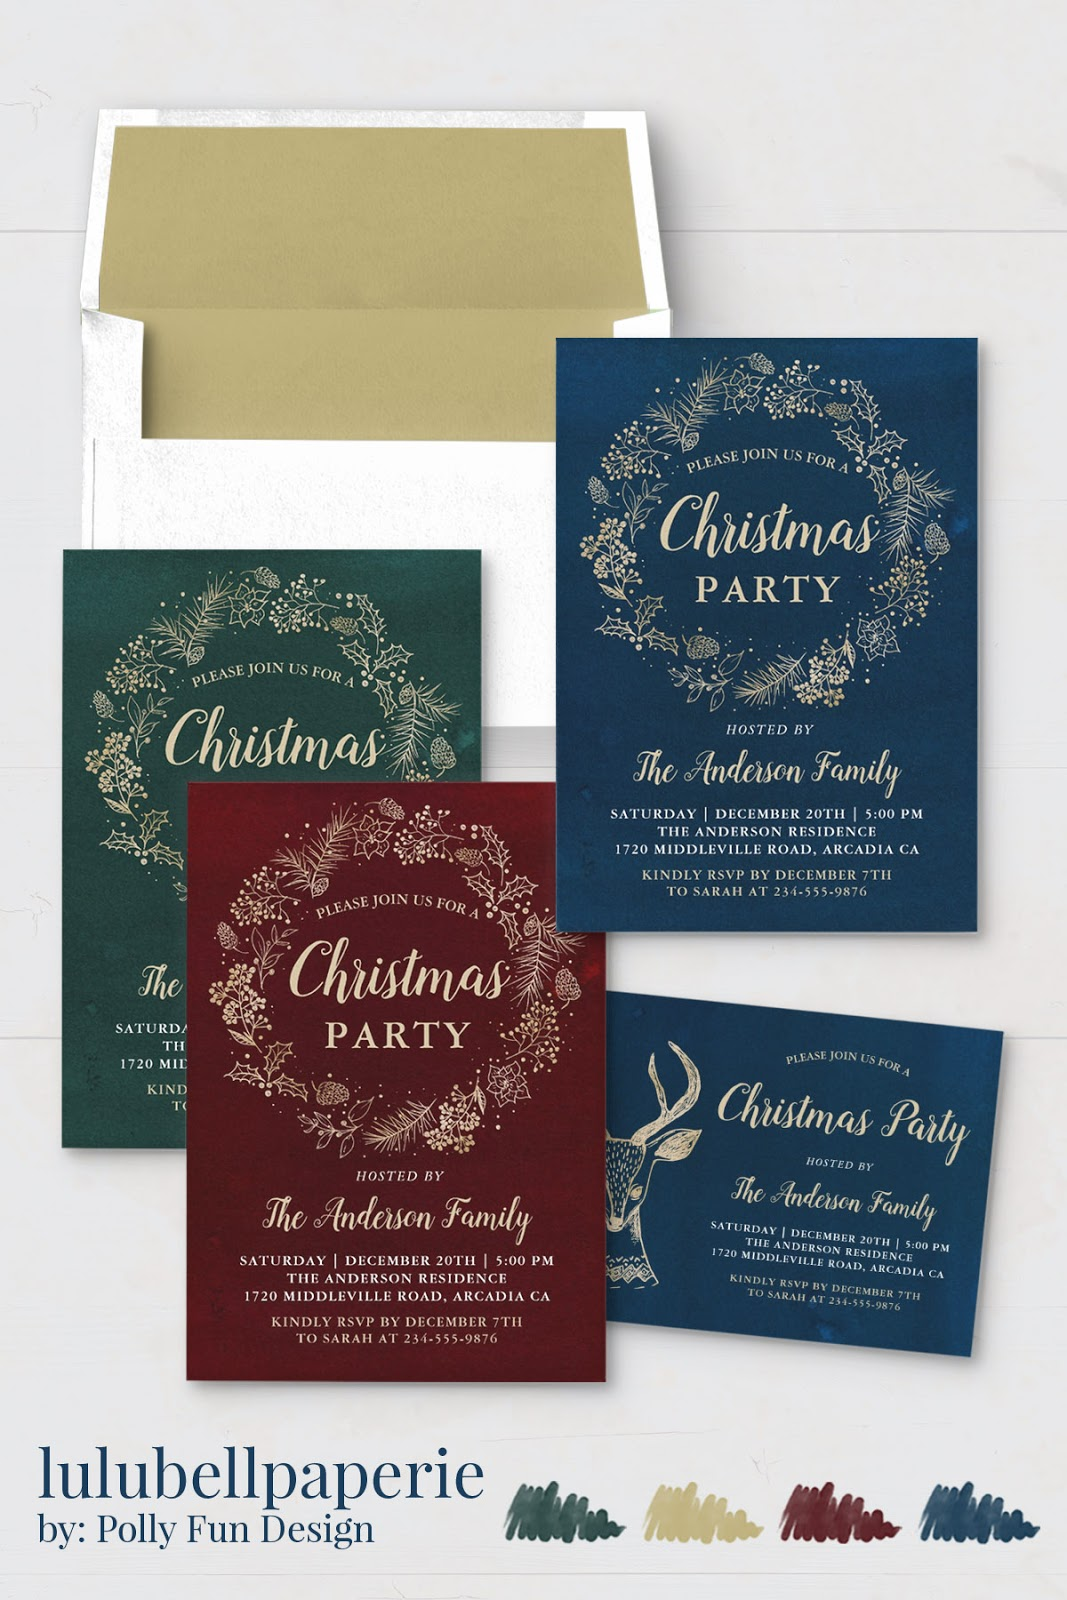 Burgundy, Navy Blue, Gold, and Green Elegant Christmas Invitation Stationery Suite - Custom Holiday Party Invite Assortment